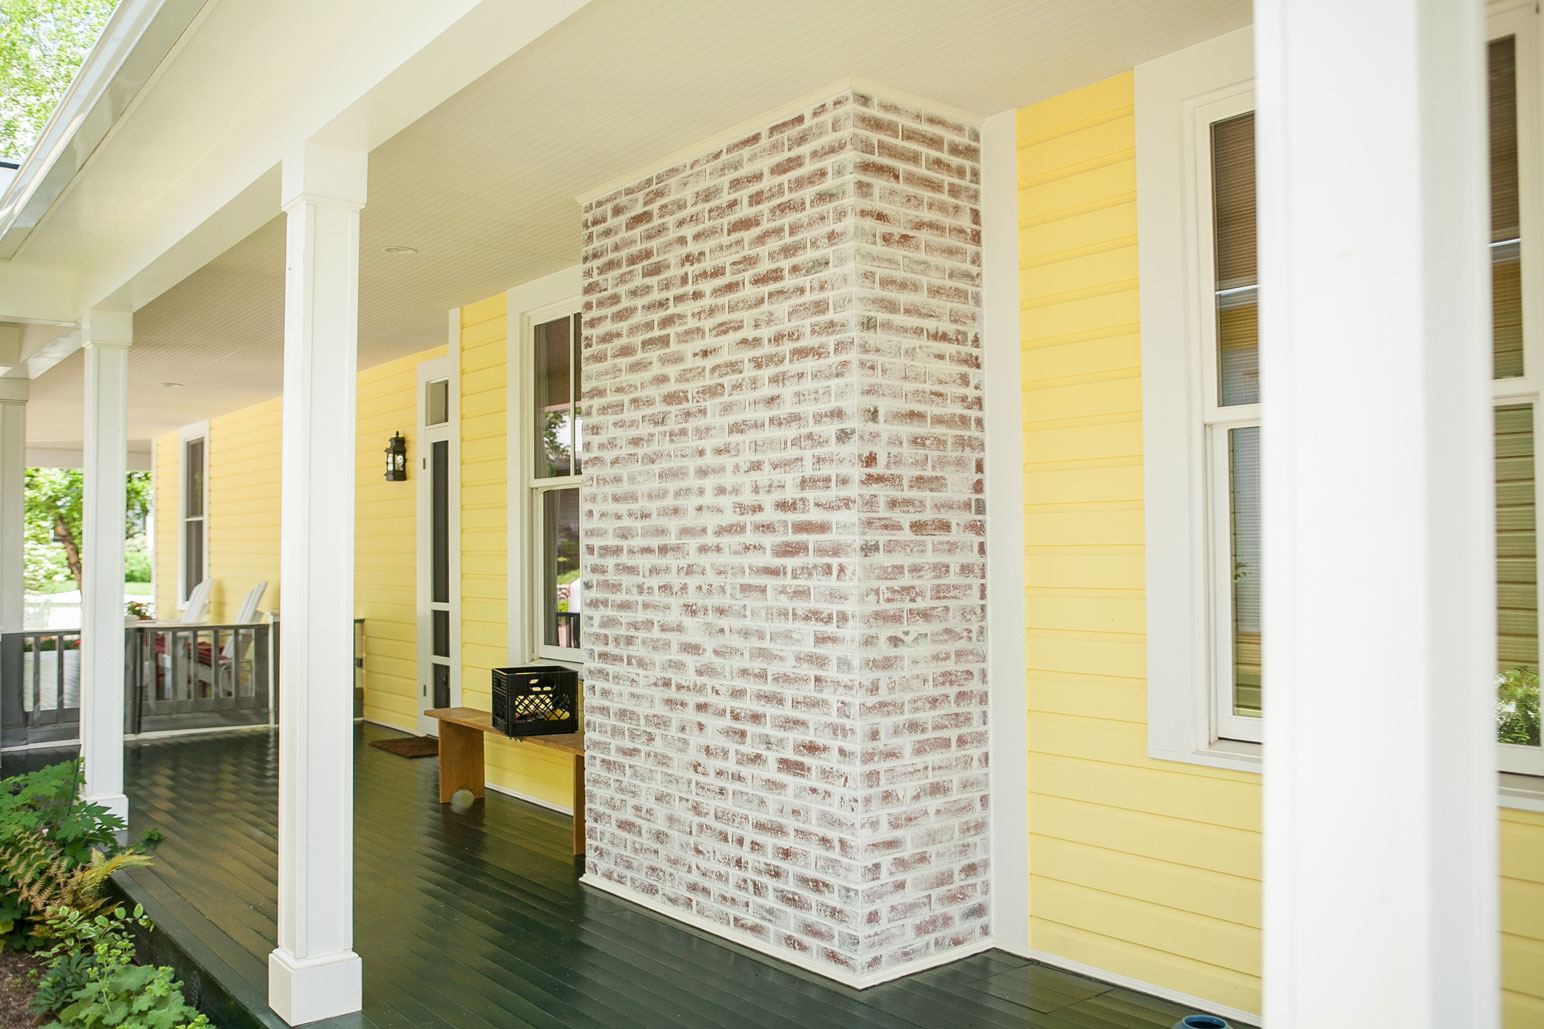 We can provide brick veneers to match existing brick work or new construction. Contact us today and discover how we can help make your vision a reality.